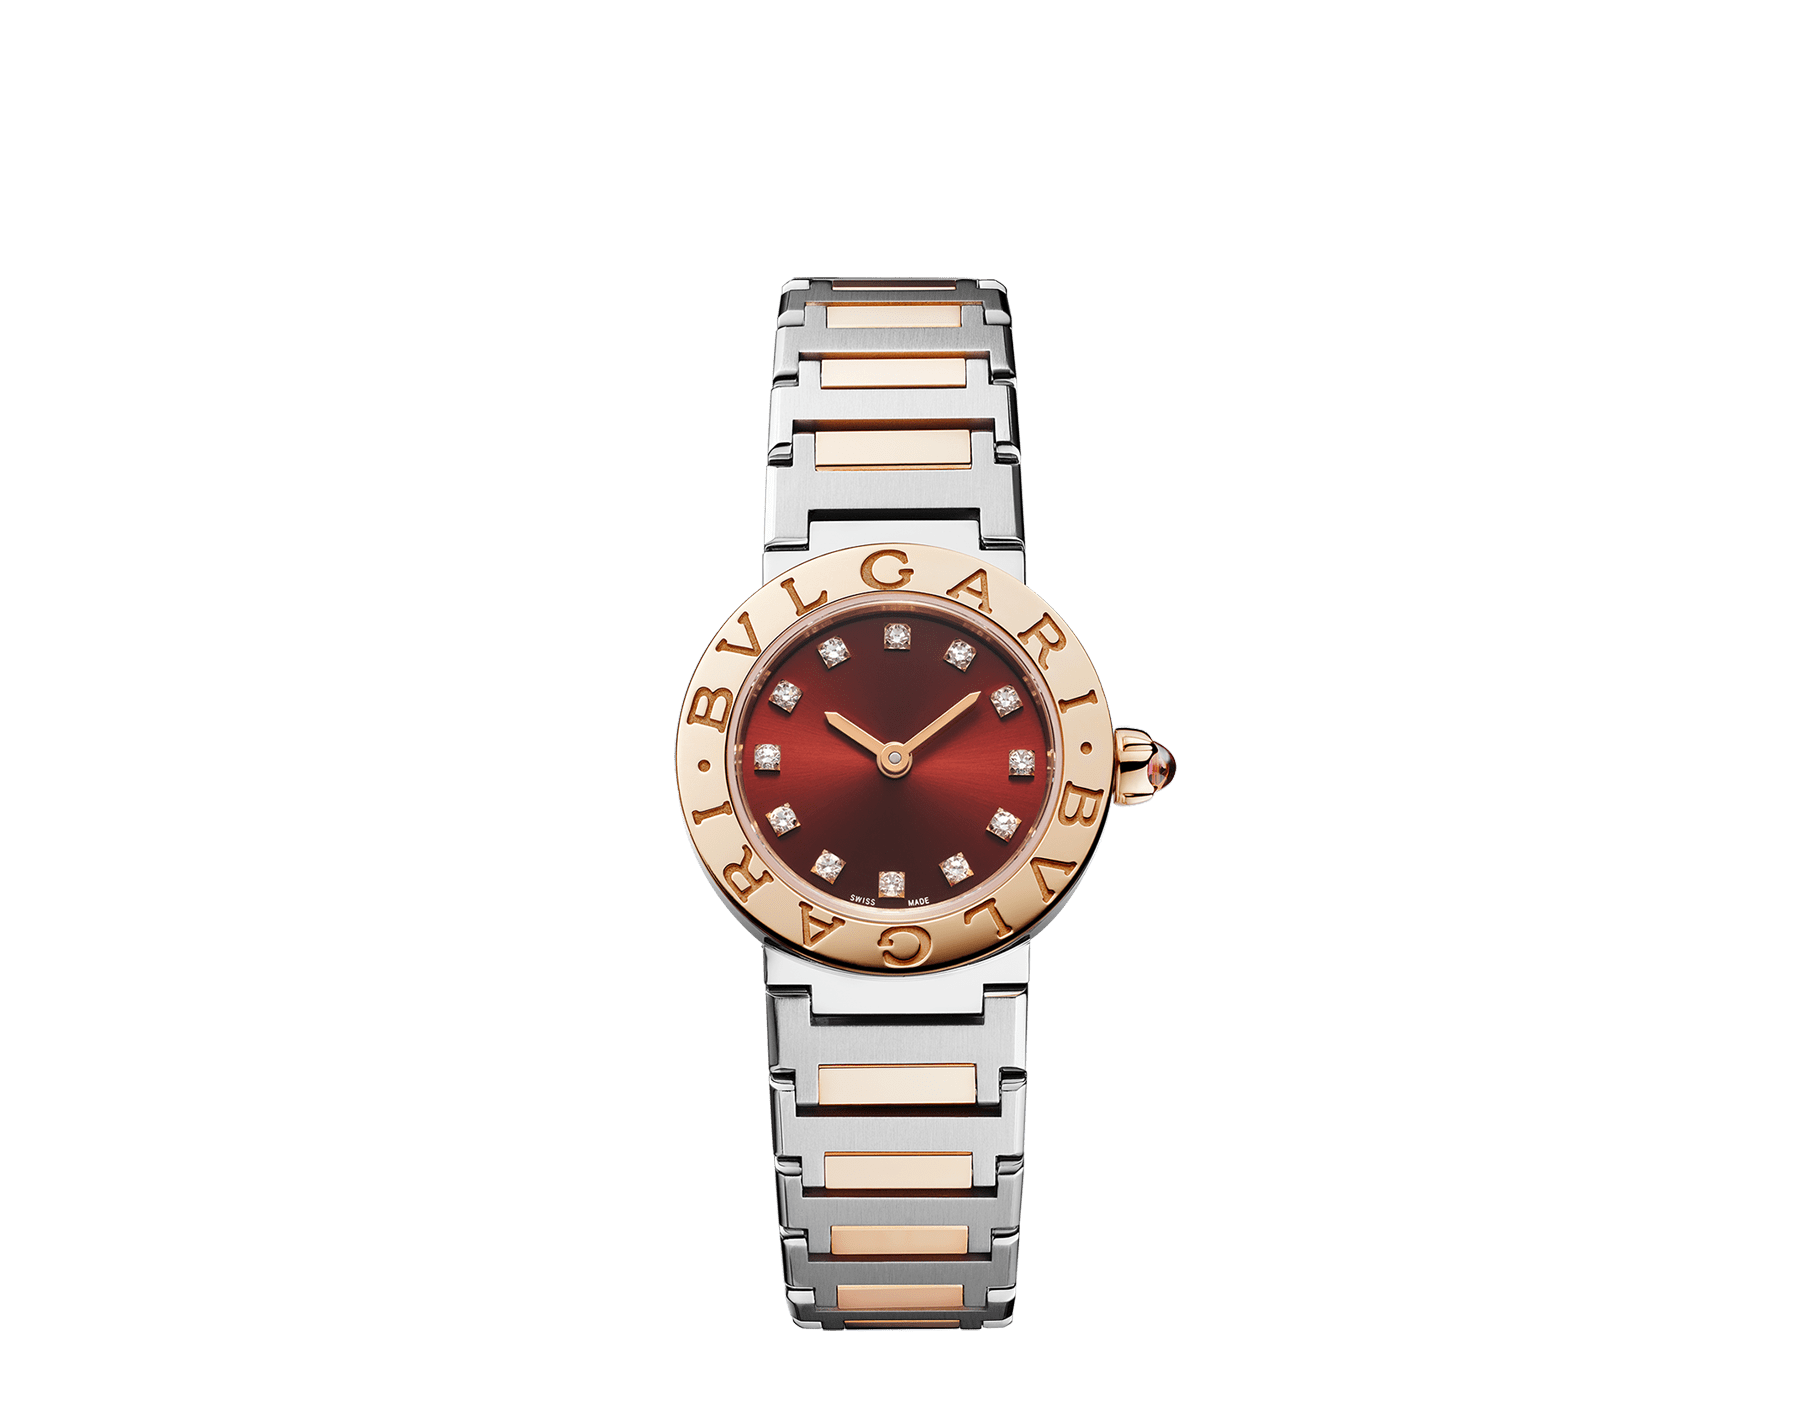 BVLGARI BVLGARI watch in 18 kt rose gold and stainless steel case and bracelet, 18 kt rose gold bezel engraved with double logo, brown satiné soleil lacquered dial and diamond indexes 103218 image 1